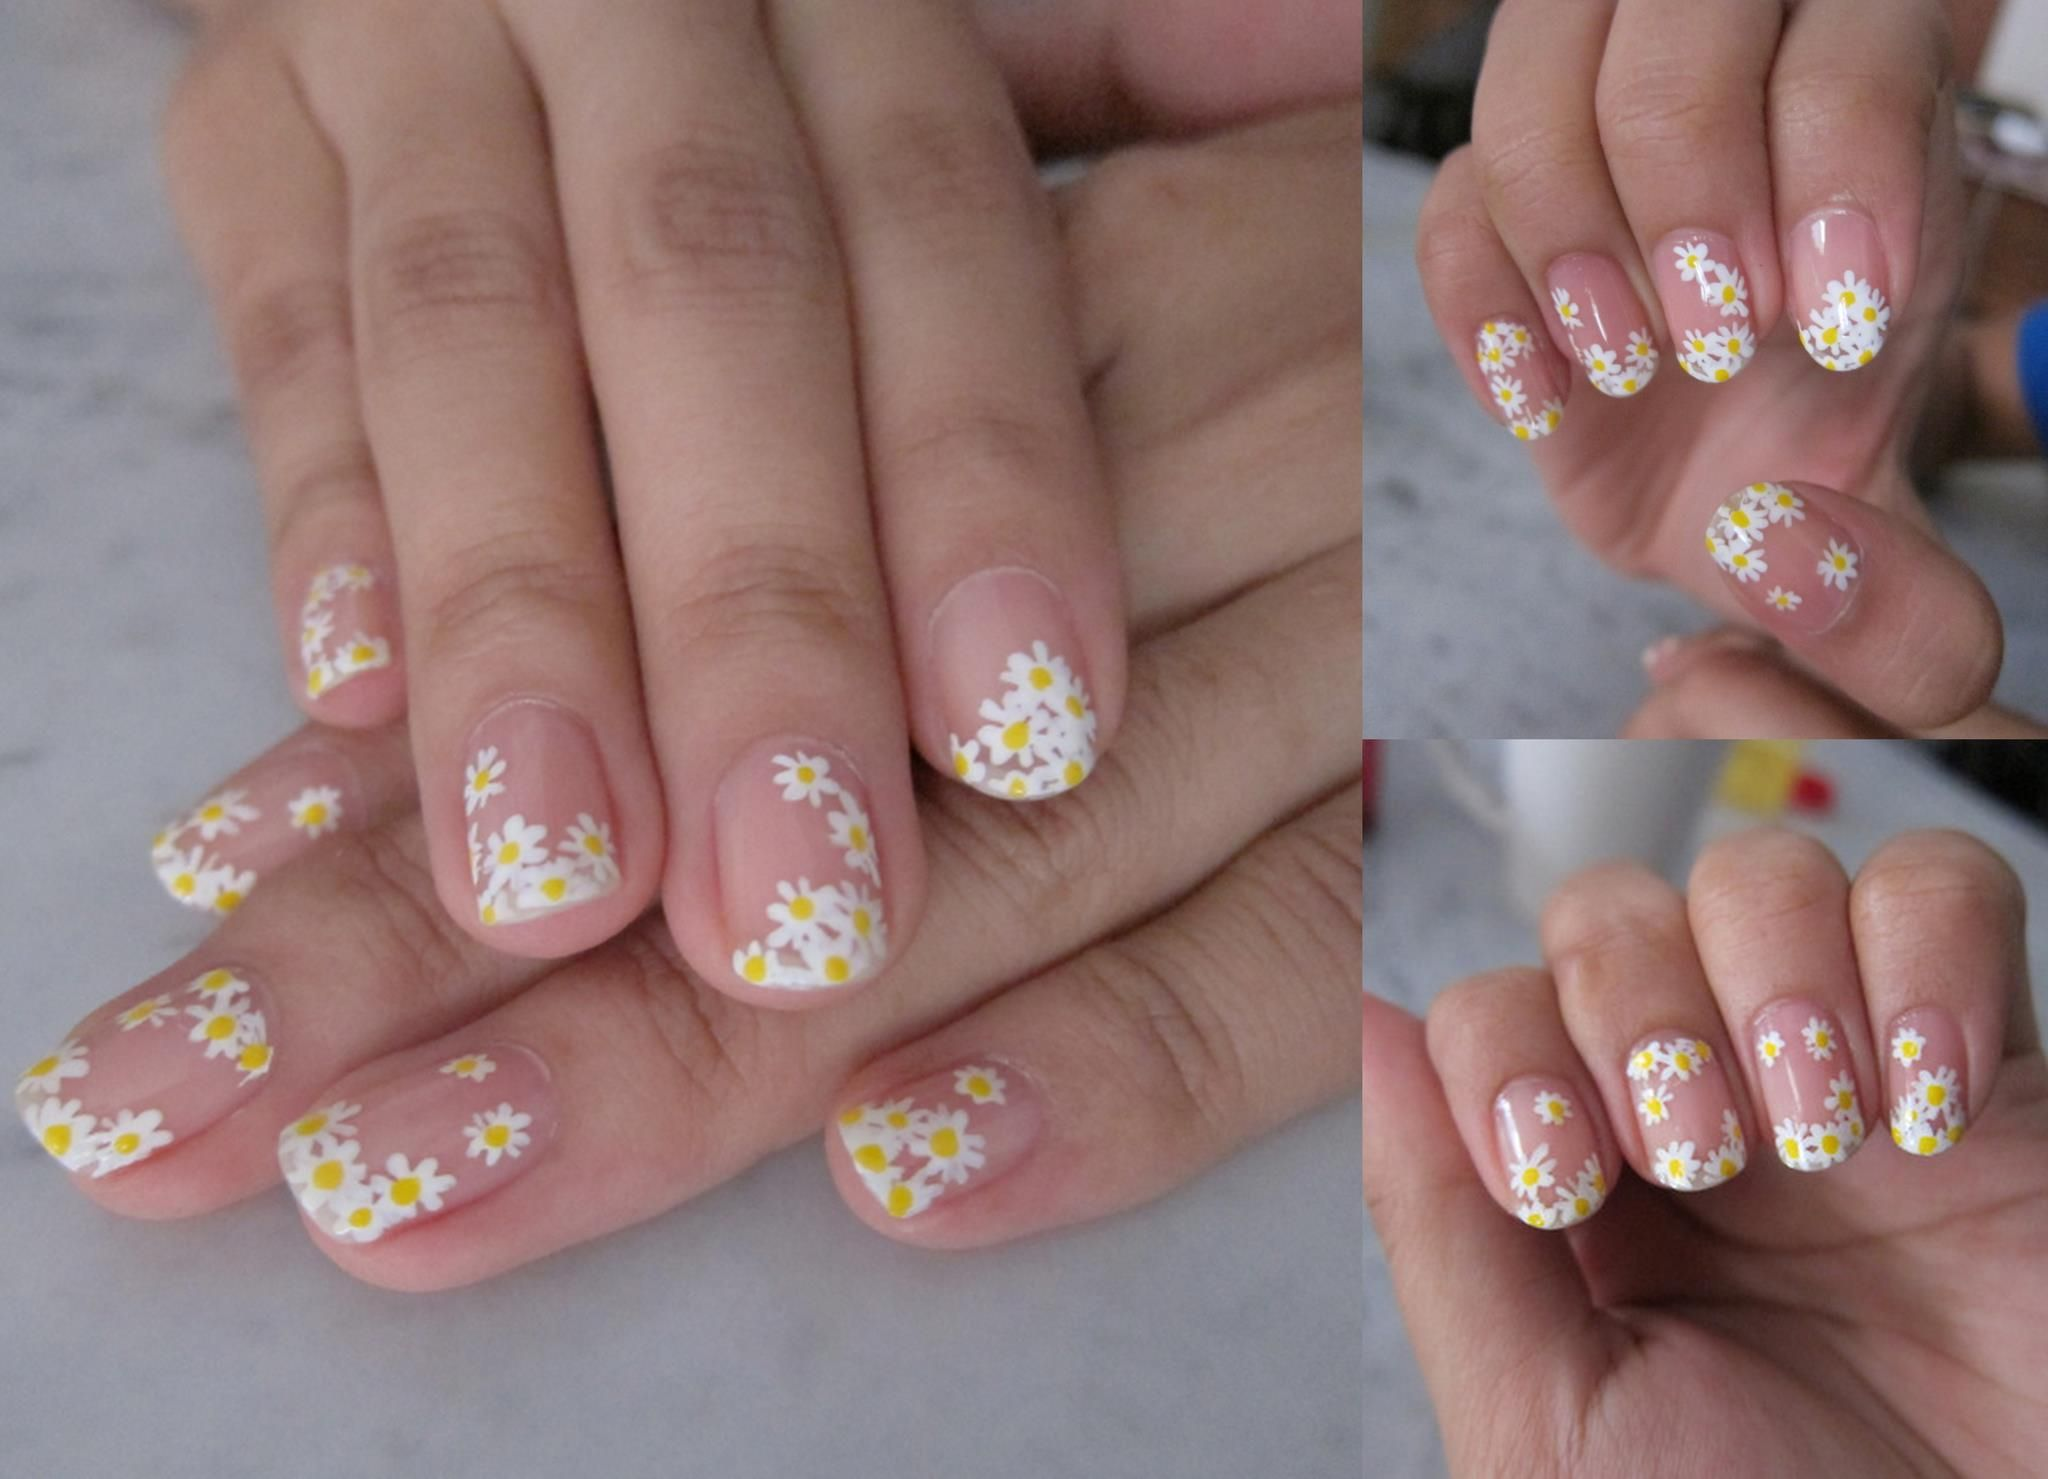 Daisies are in bloom daisy nails couture nails daisy